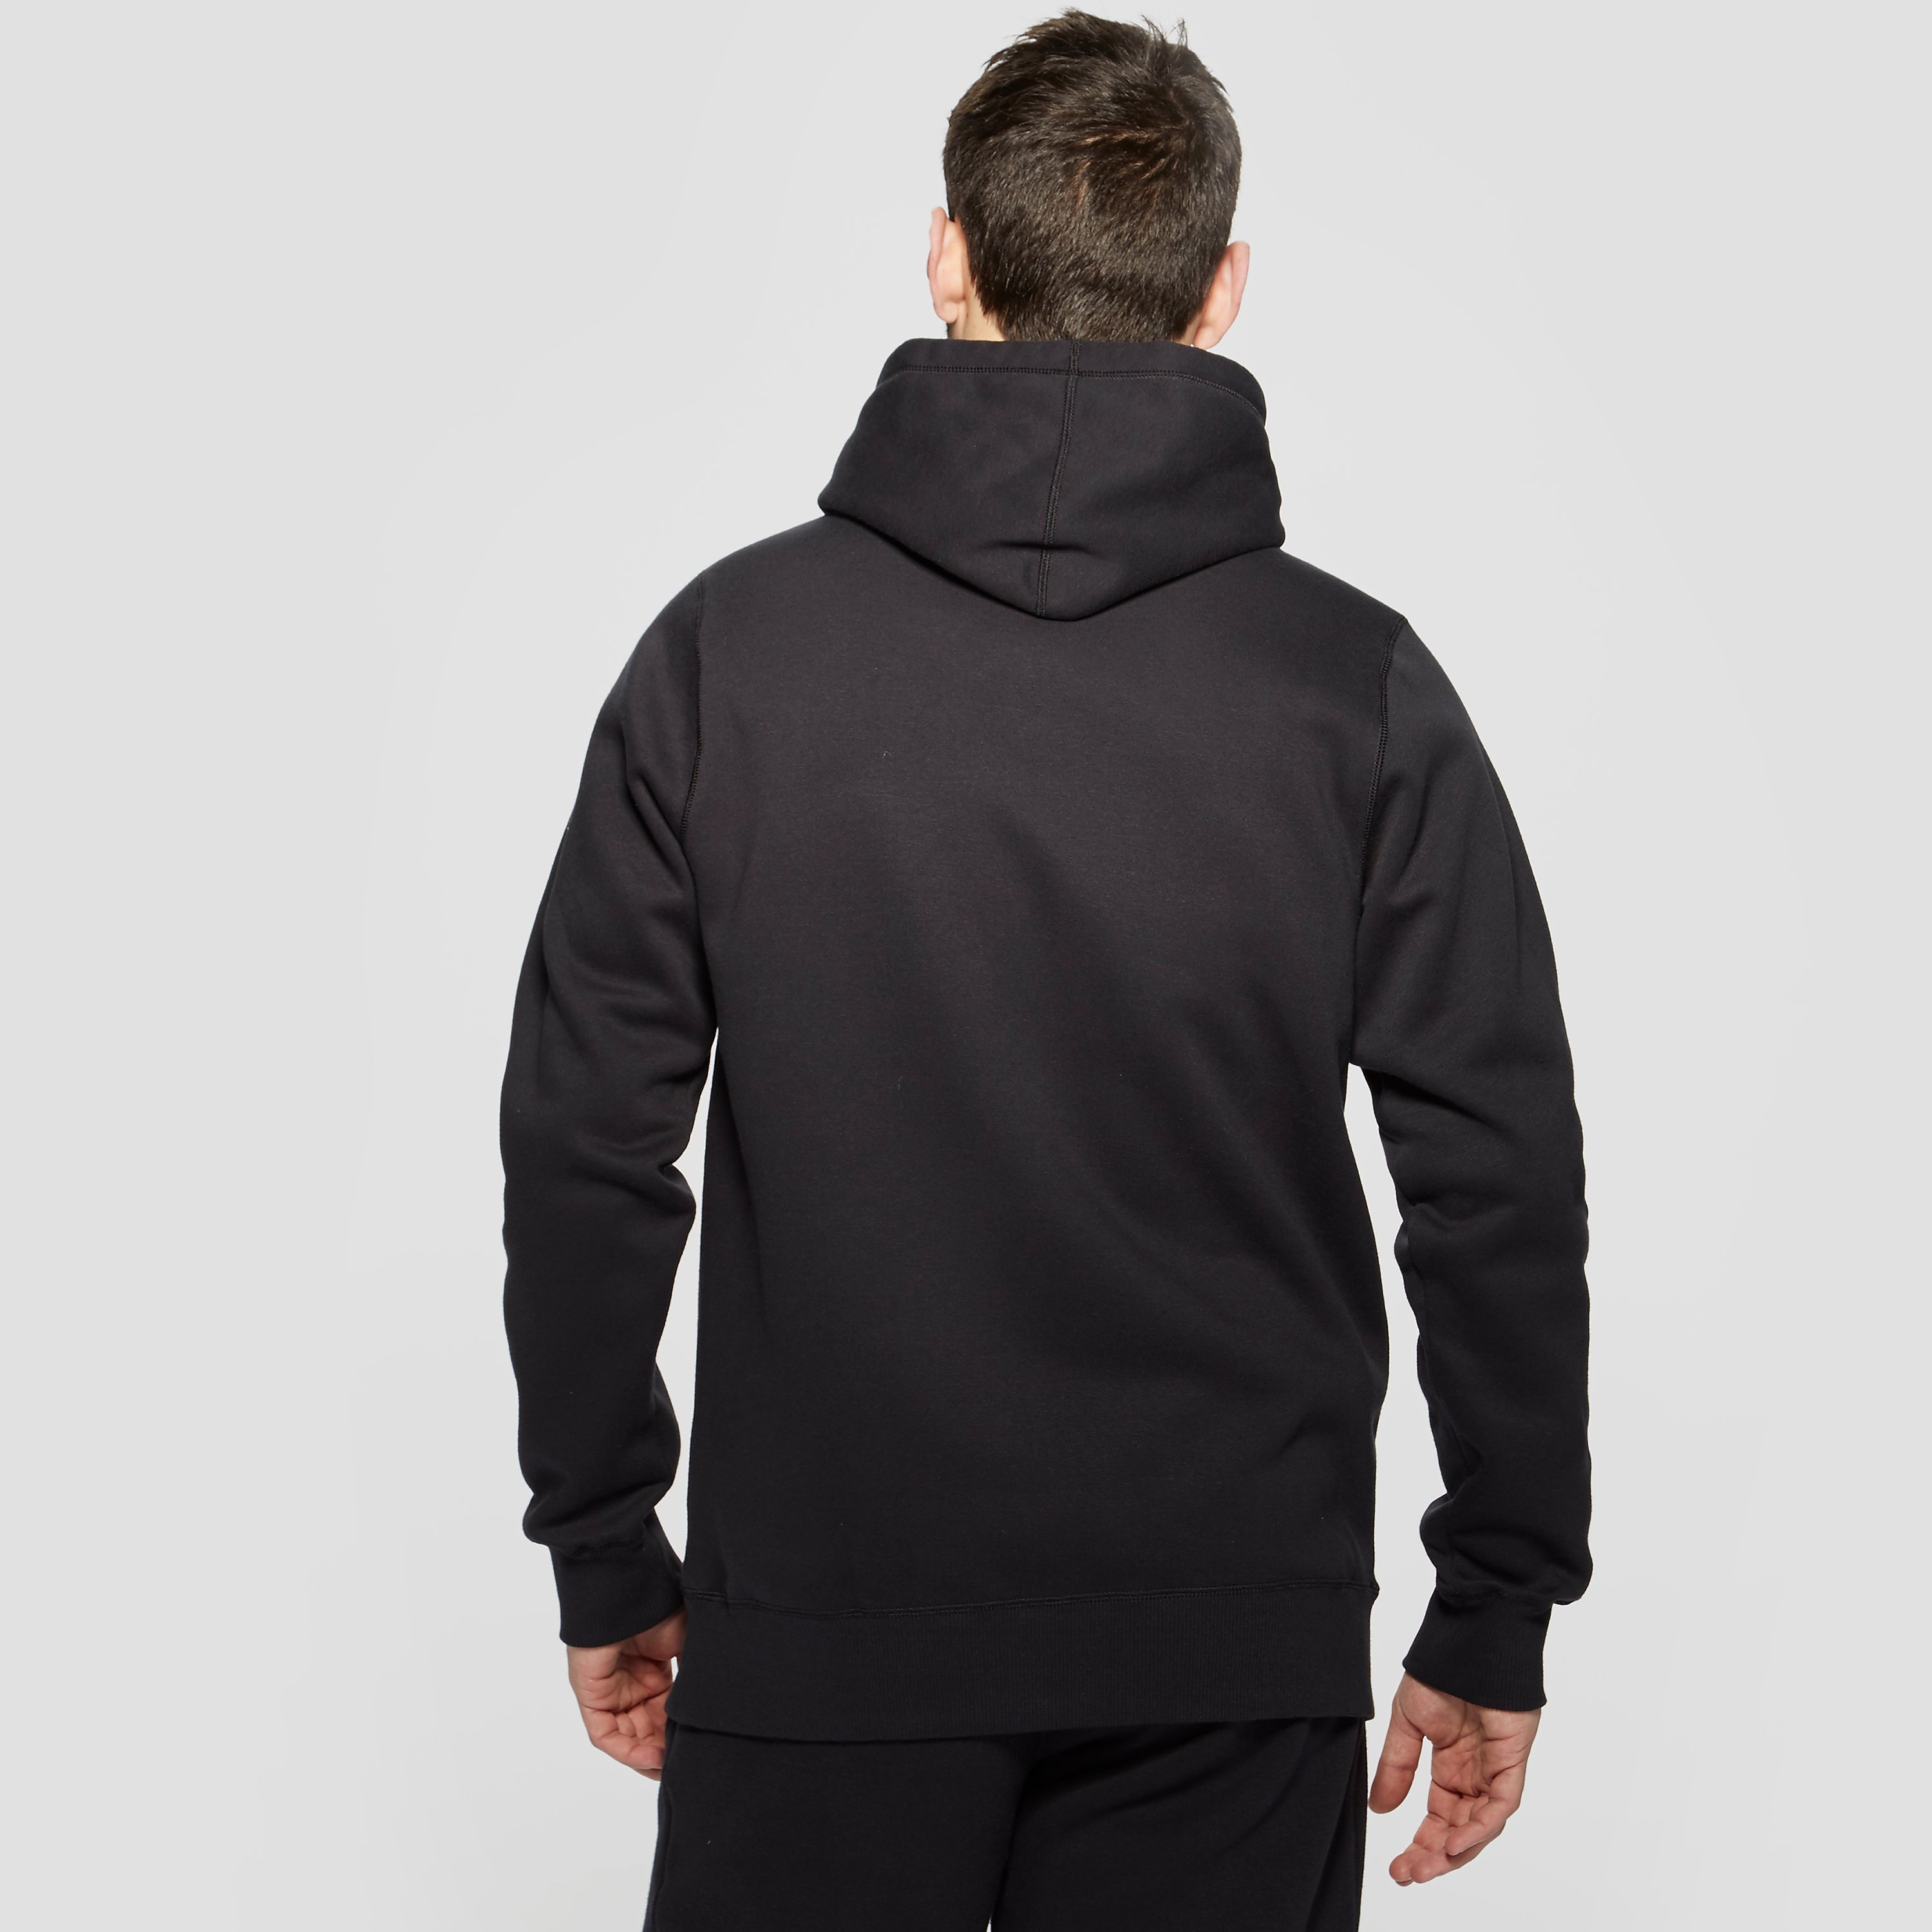 Under Armour Storm Rival Men's Hoodie